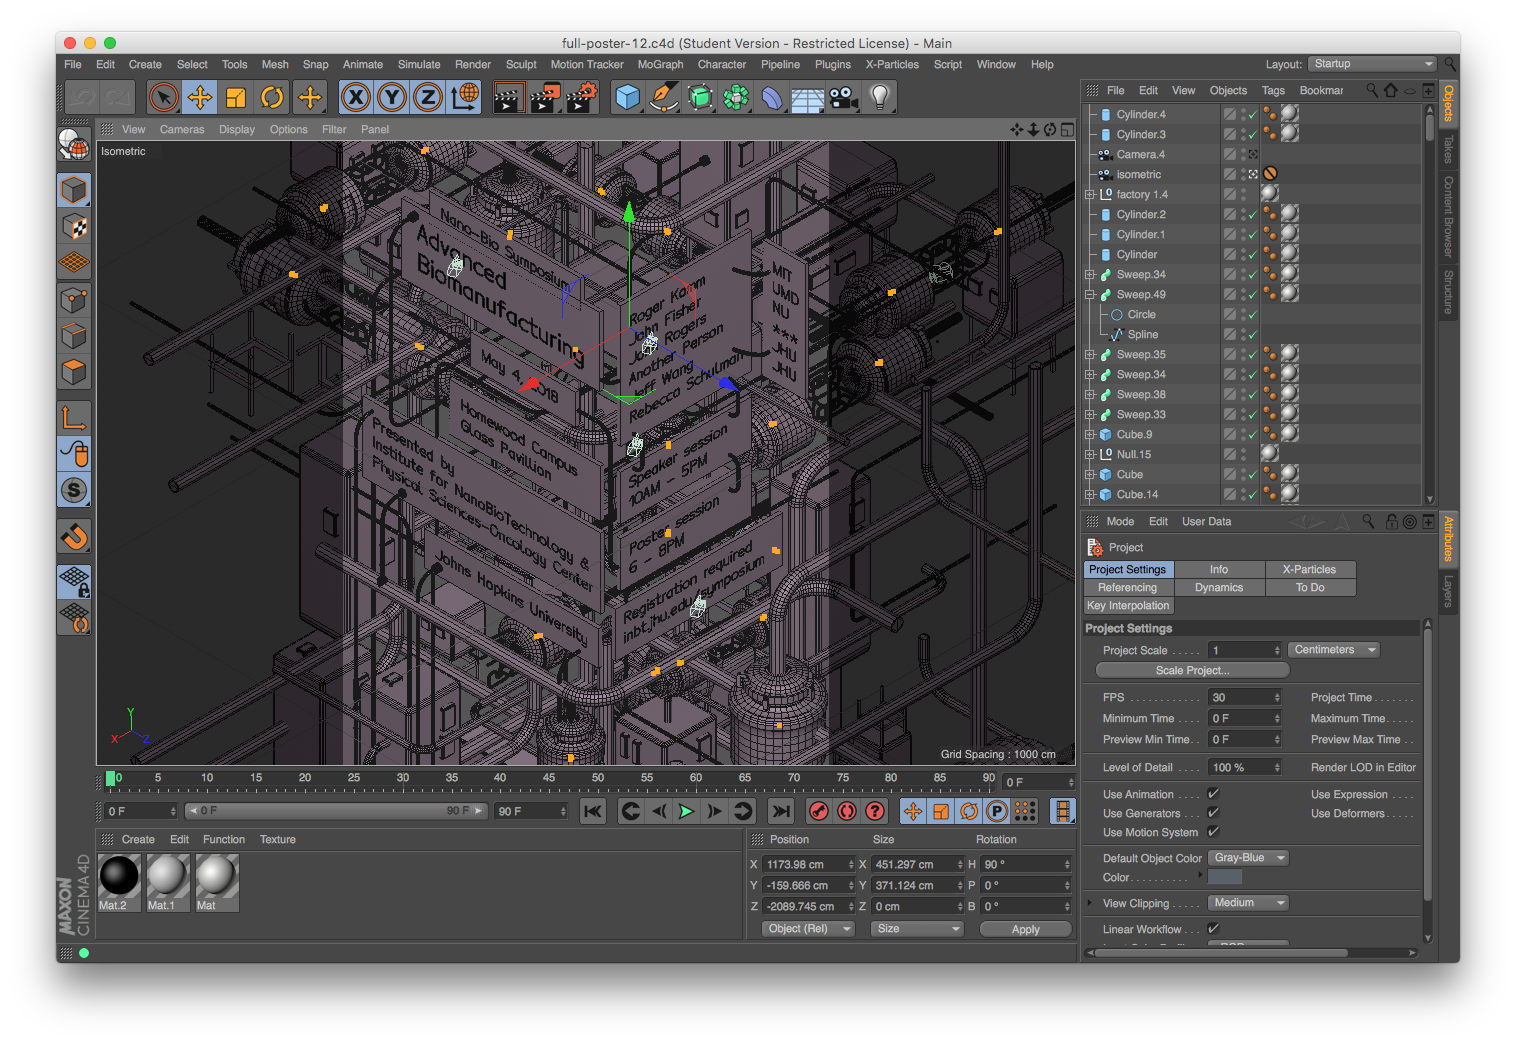 cinema 4d being used for poster layout and composition